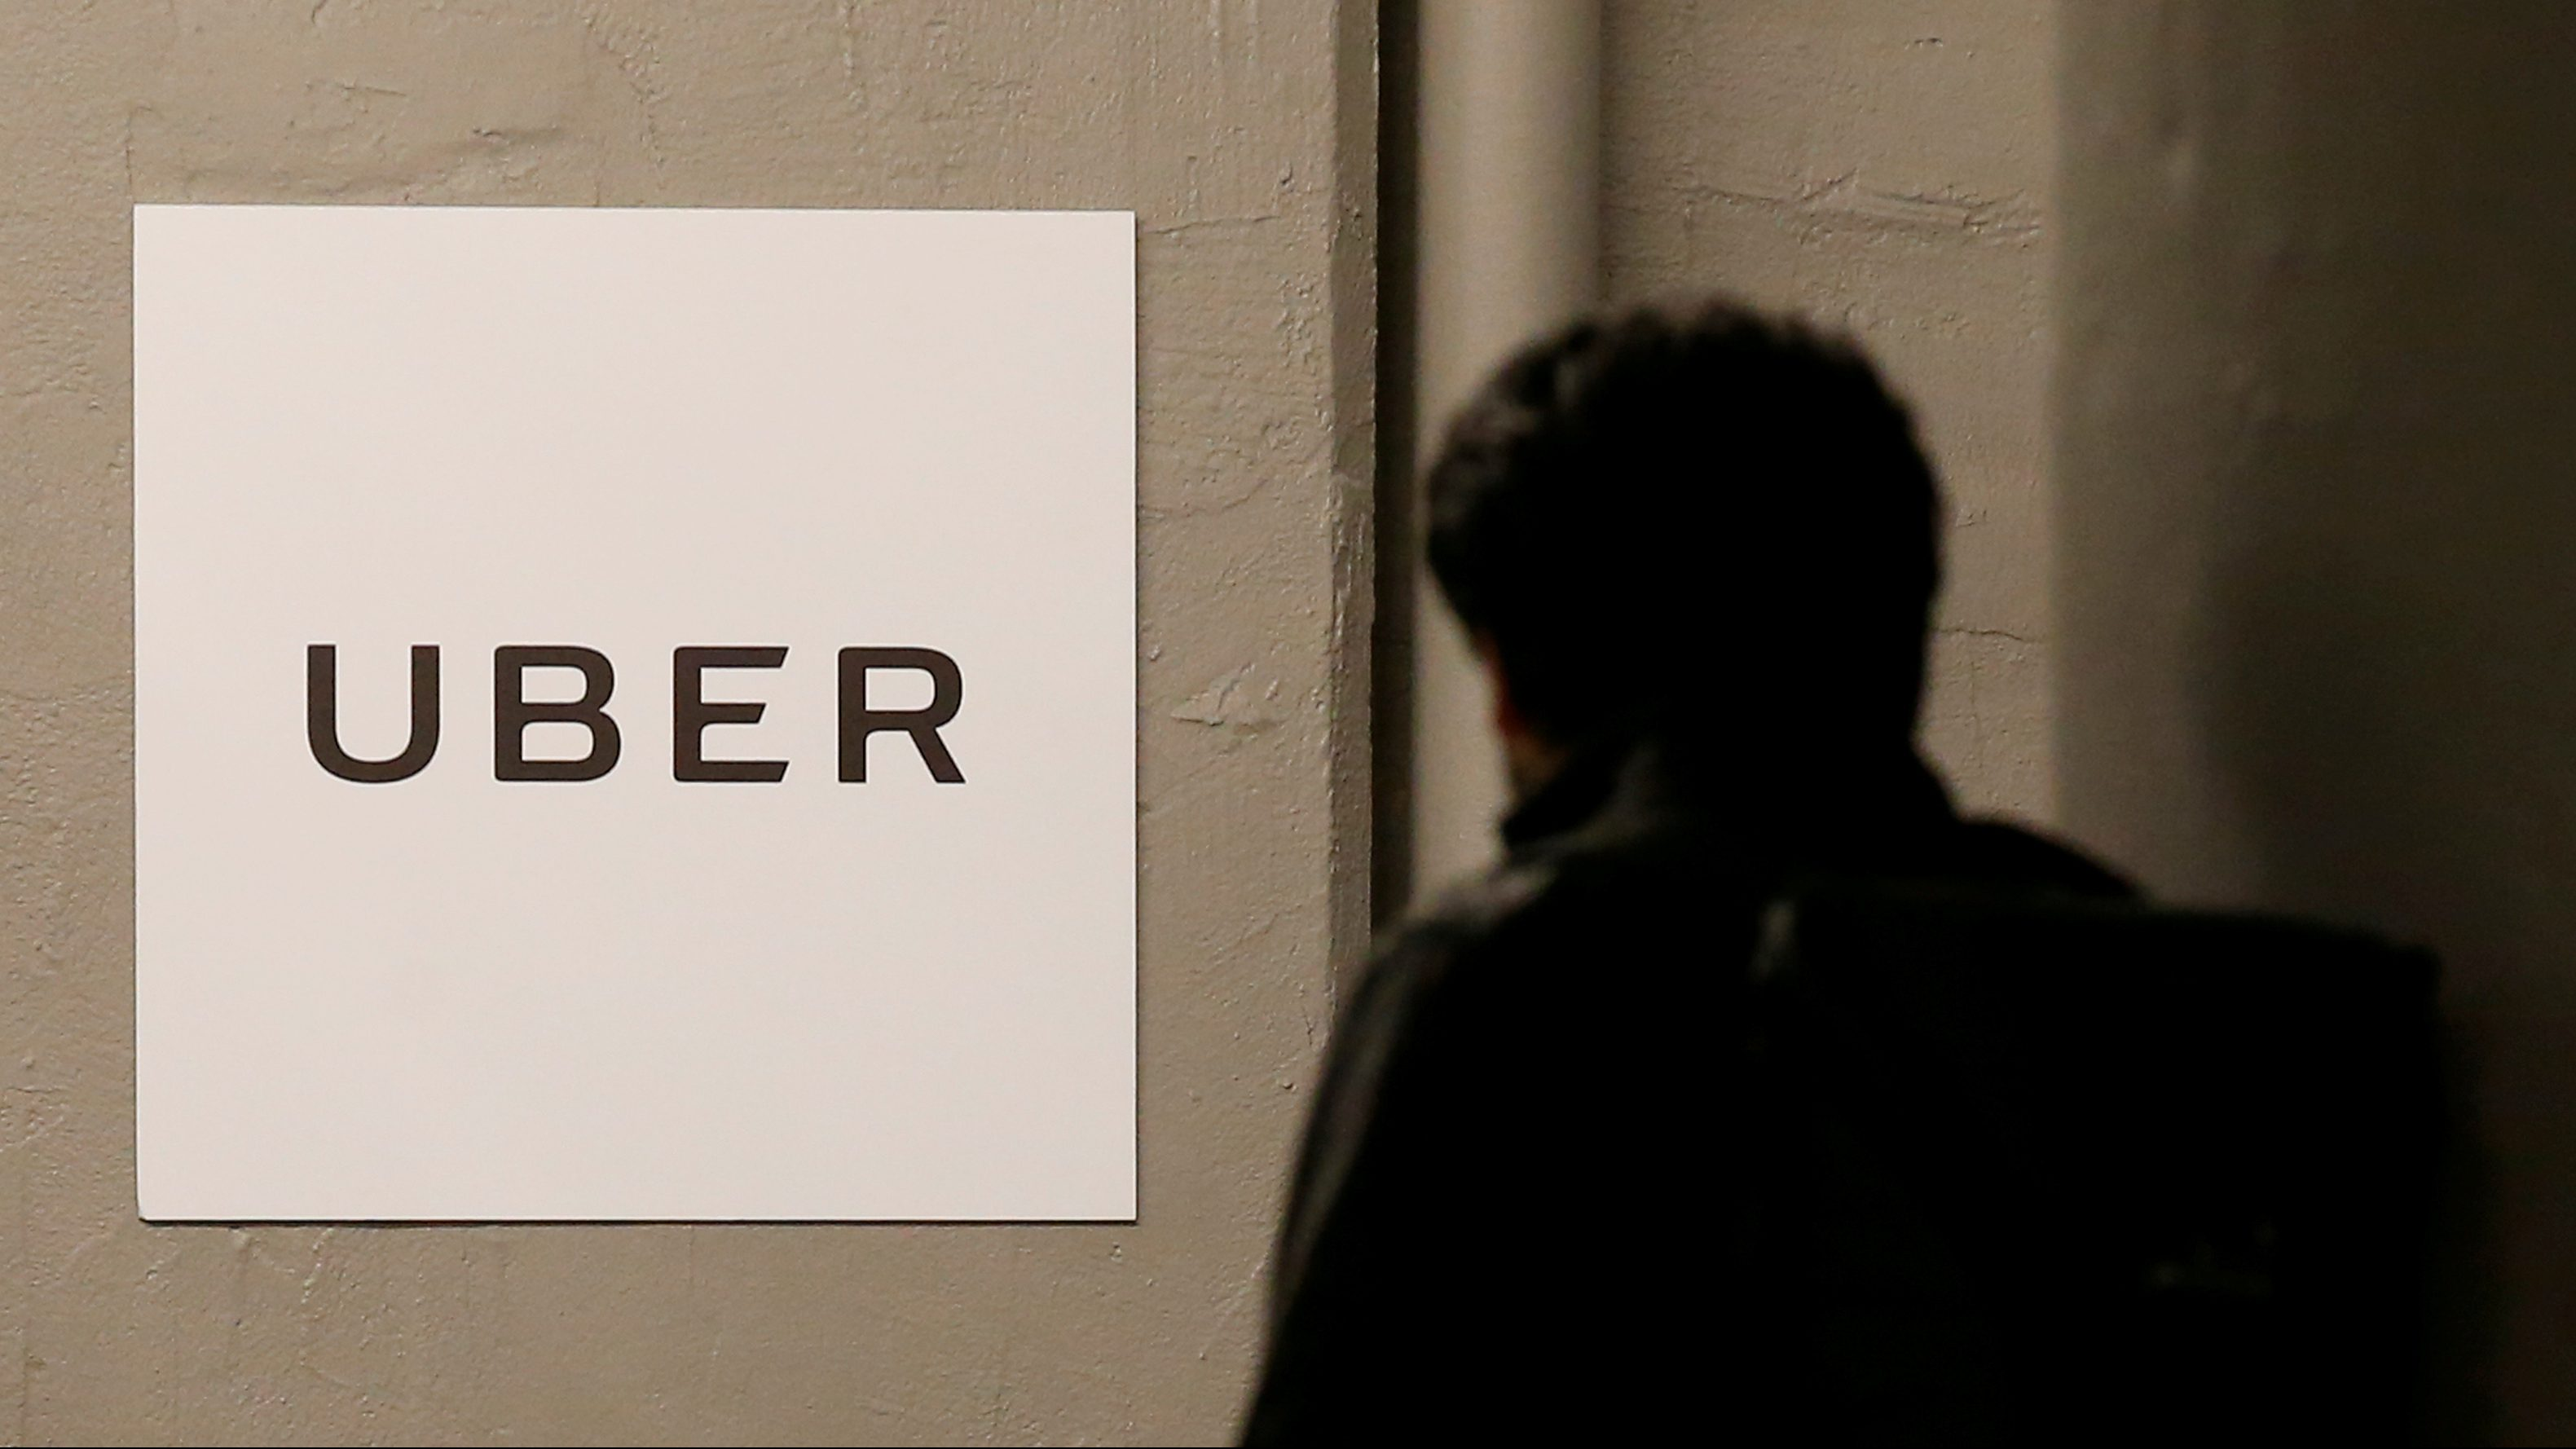 FILE PHOTO -  A man arrives at the Uber offices in Queens, New York, U.S., February 2, 2017.  REUTERS/Brendan McDermid/File Photo - RTSZWQN